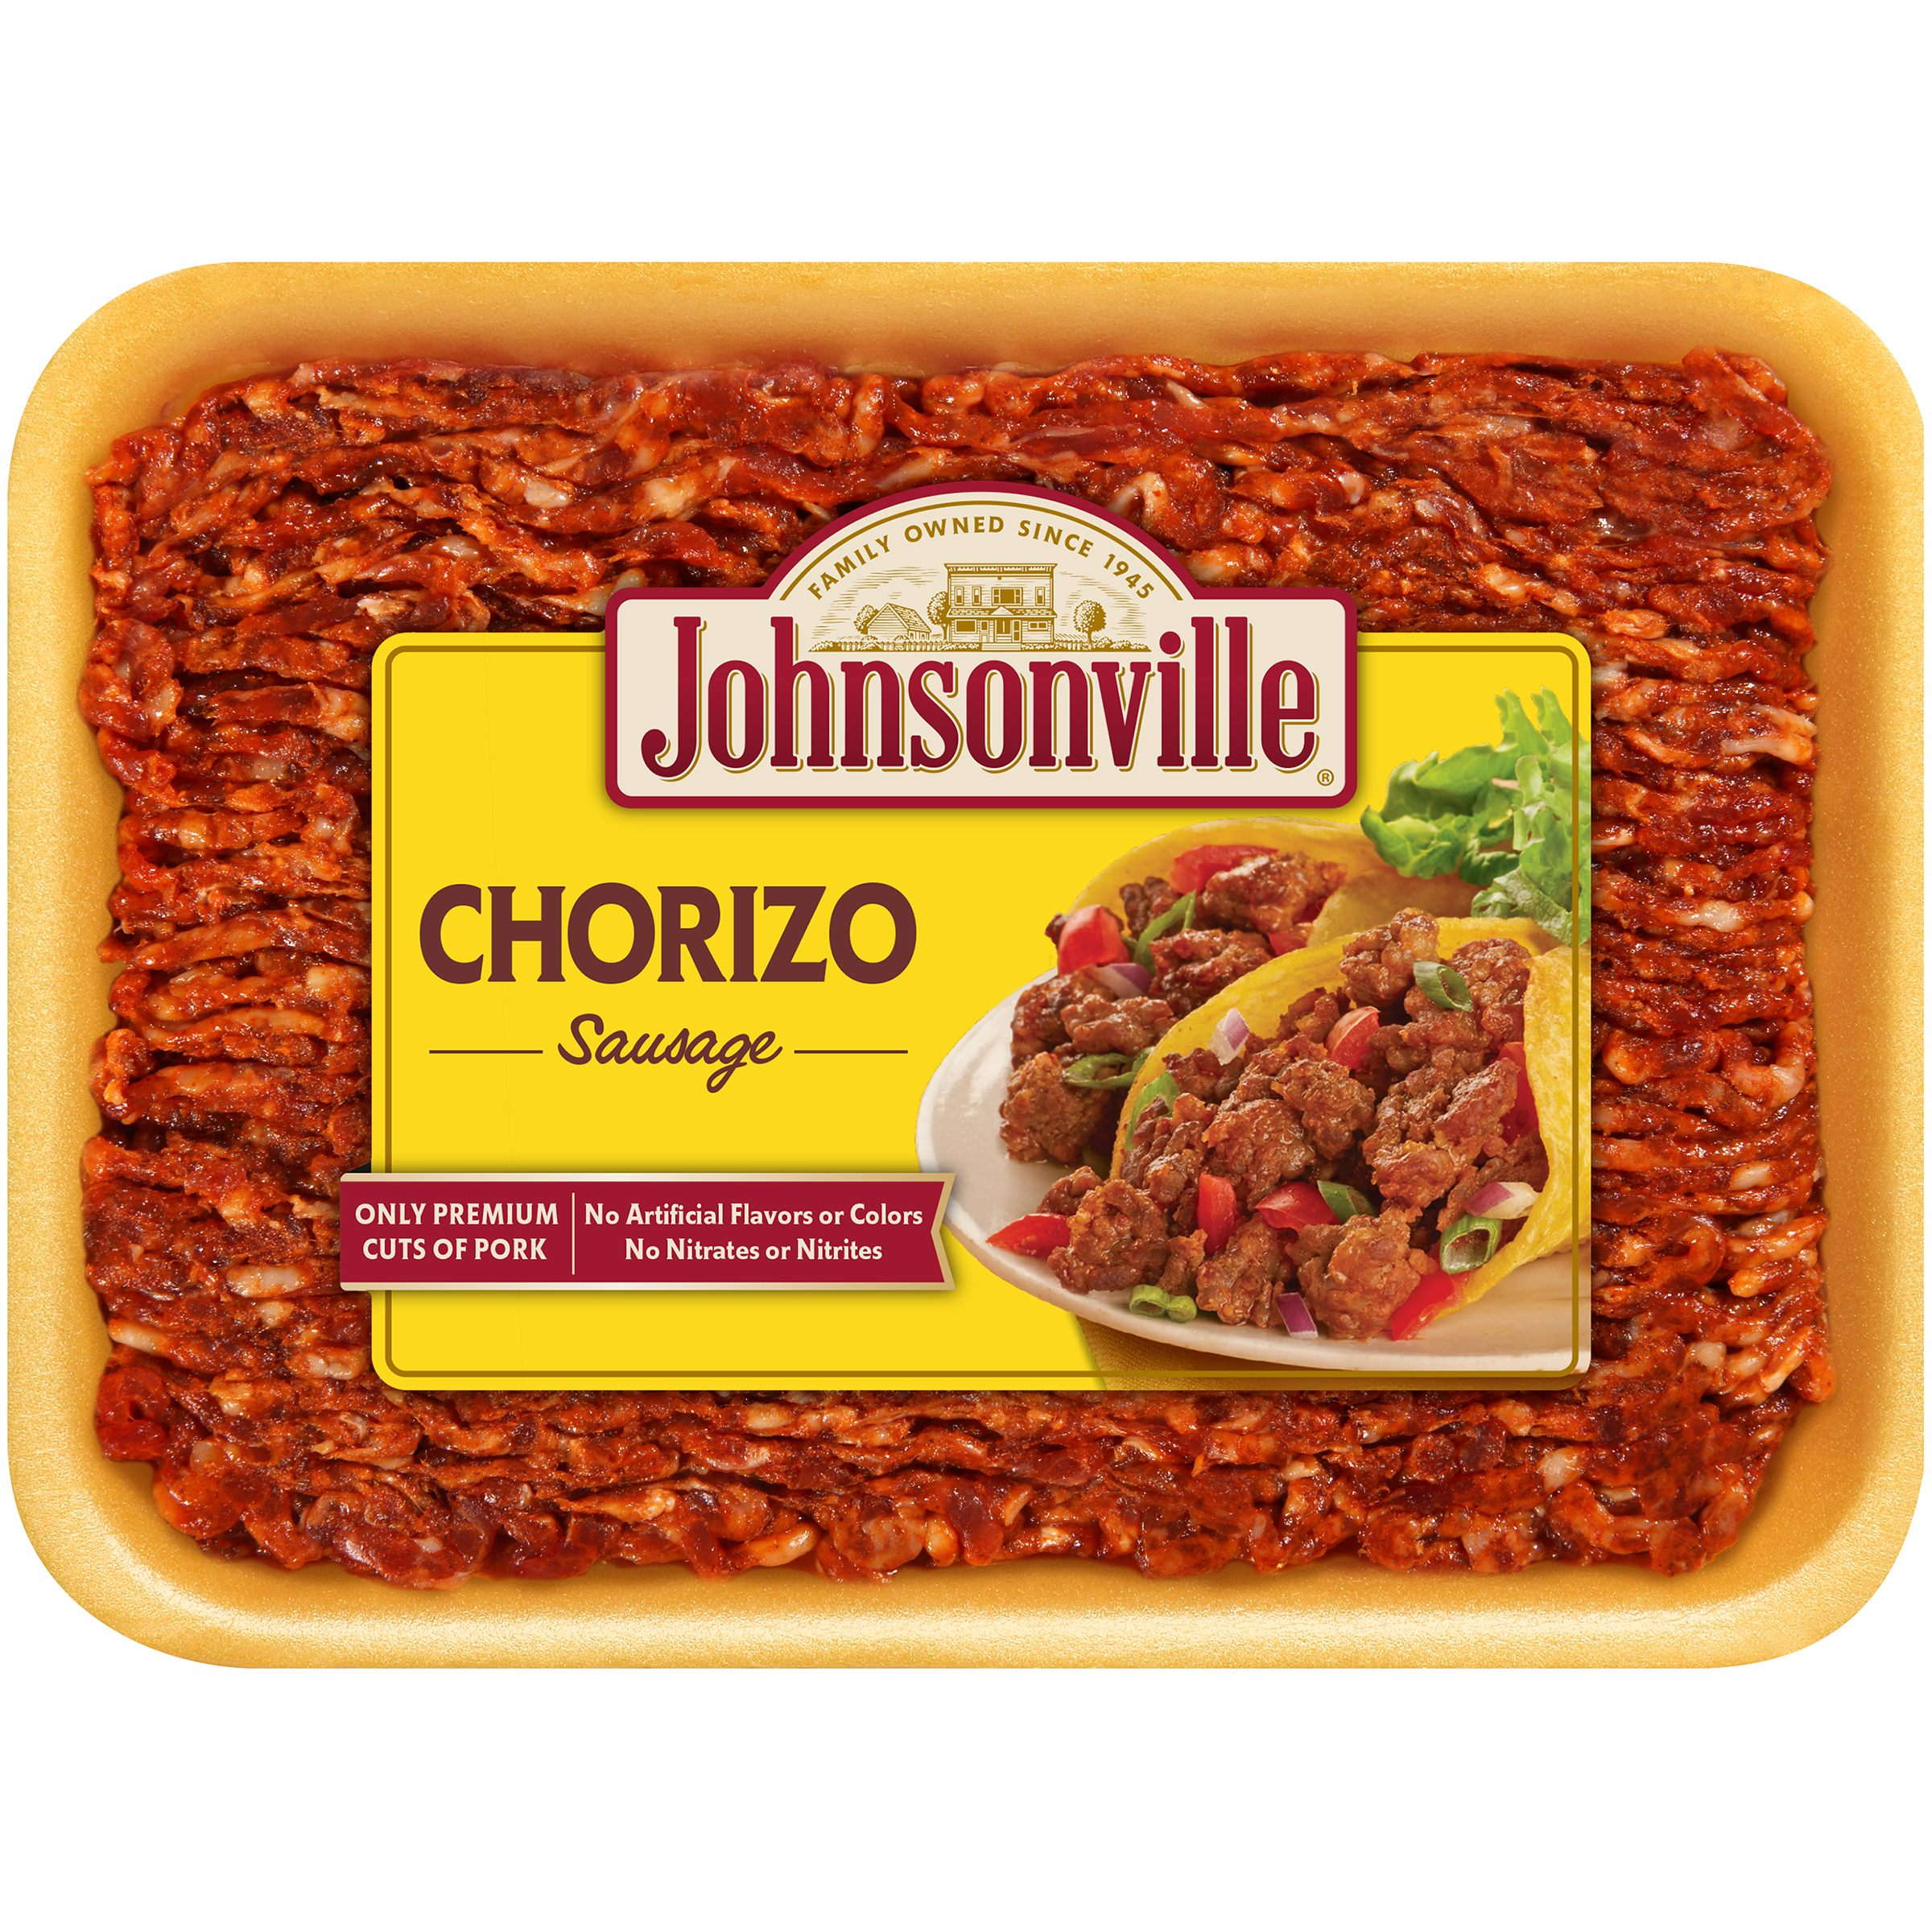 Johnsonville® Chorizo Sausage 16 oz. Tray (101503)